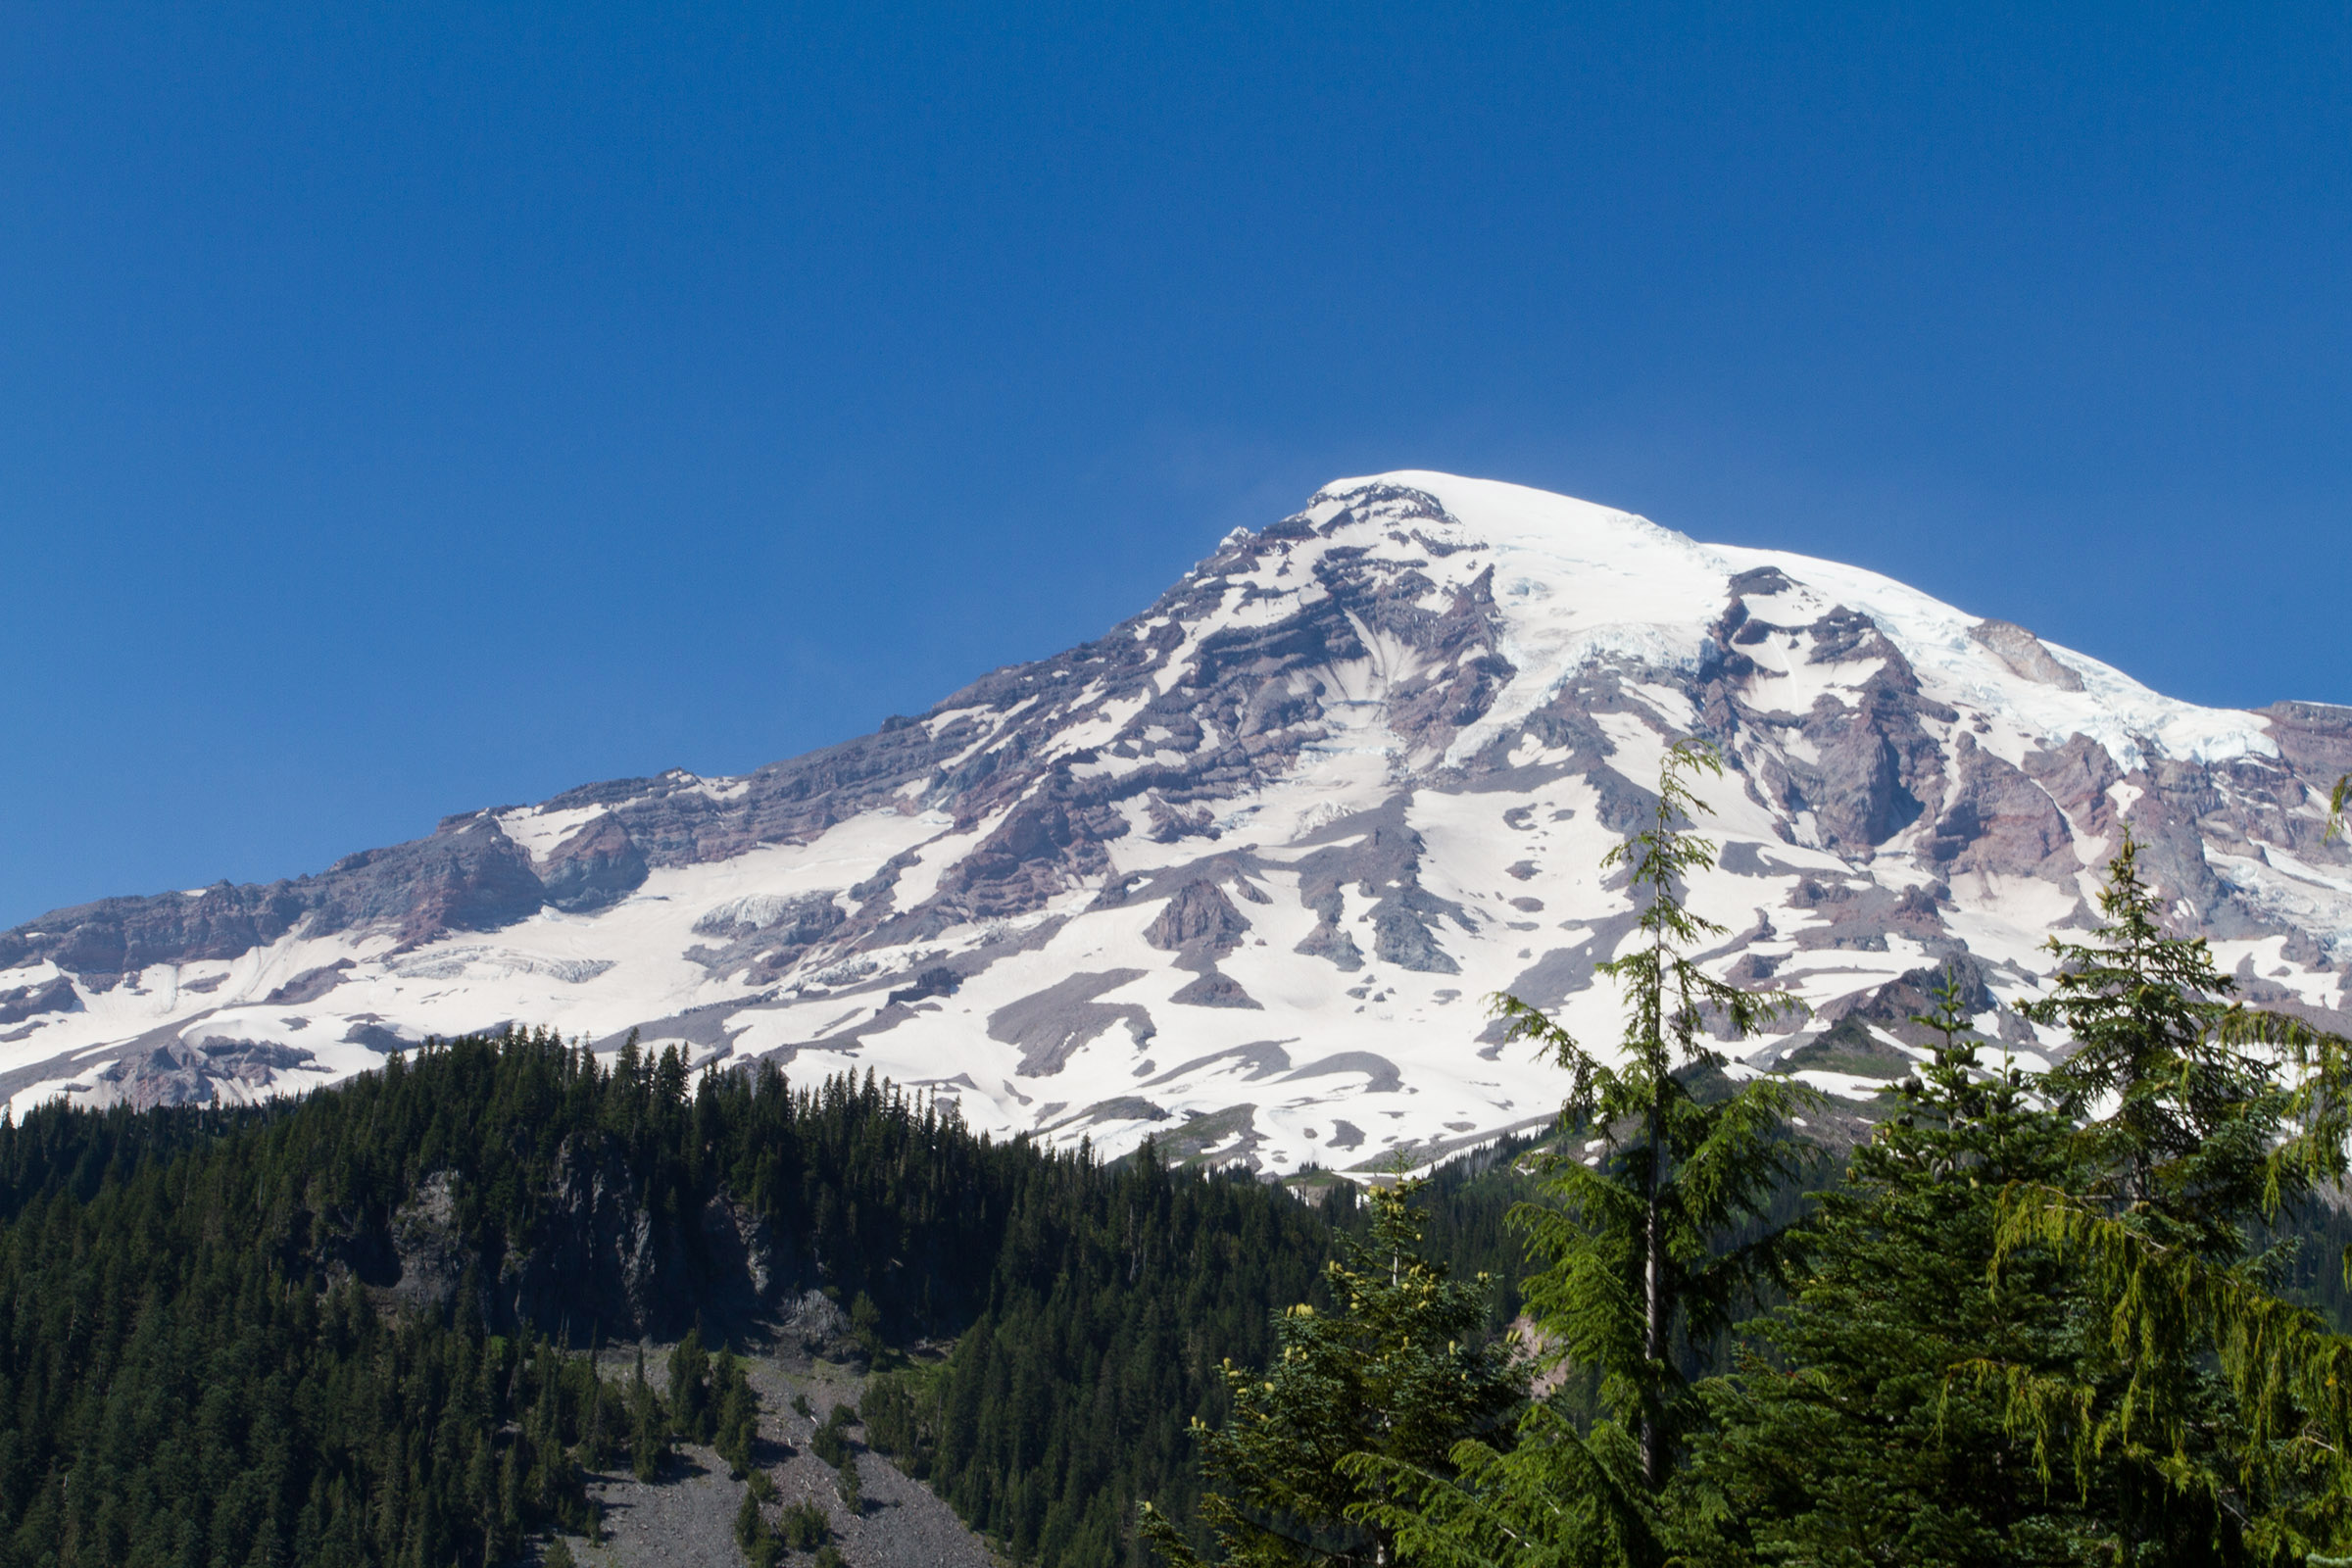 Mount Rainer, Washington, Alpine, Scenics, Park, Path, HQ Photo